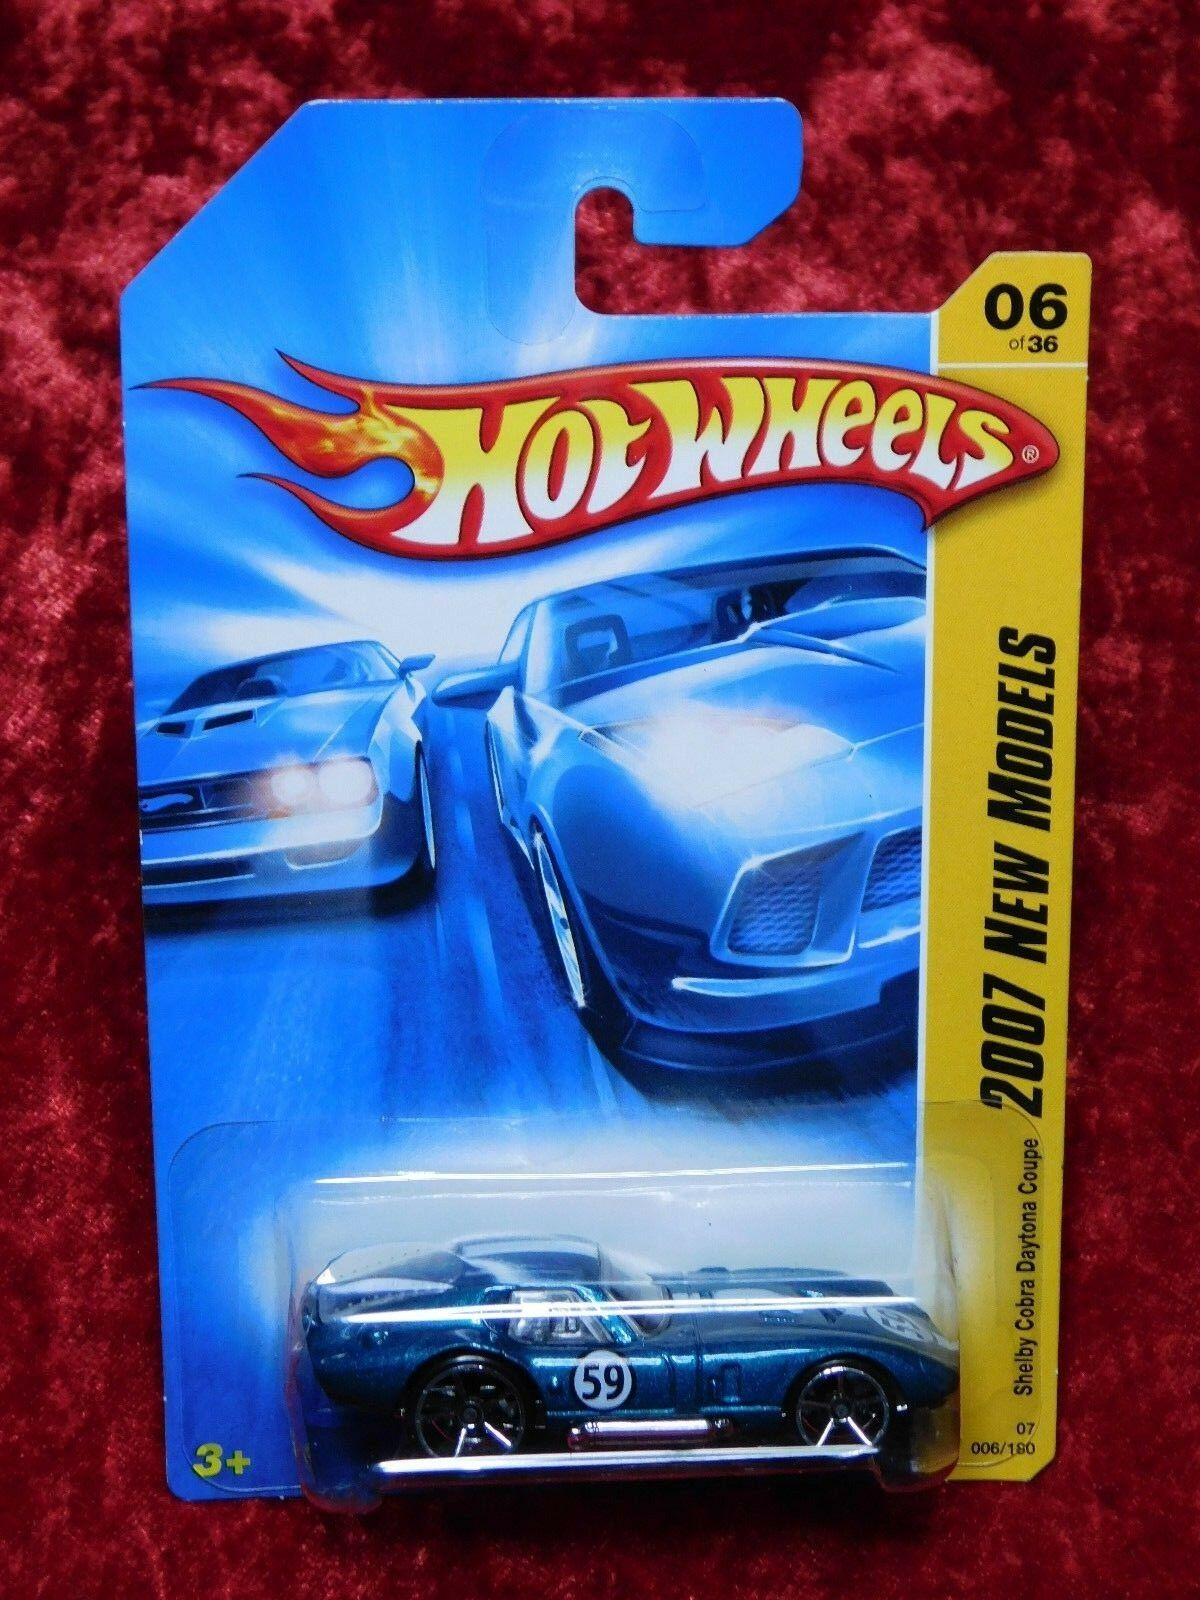 2005 07 Hot Hot Hot Wheels Classics Series 2 New Models Shelby Cobra Daytona Coupe 2 PK f59745